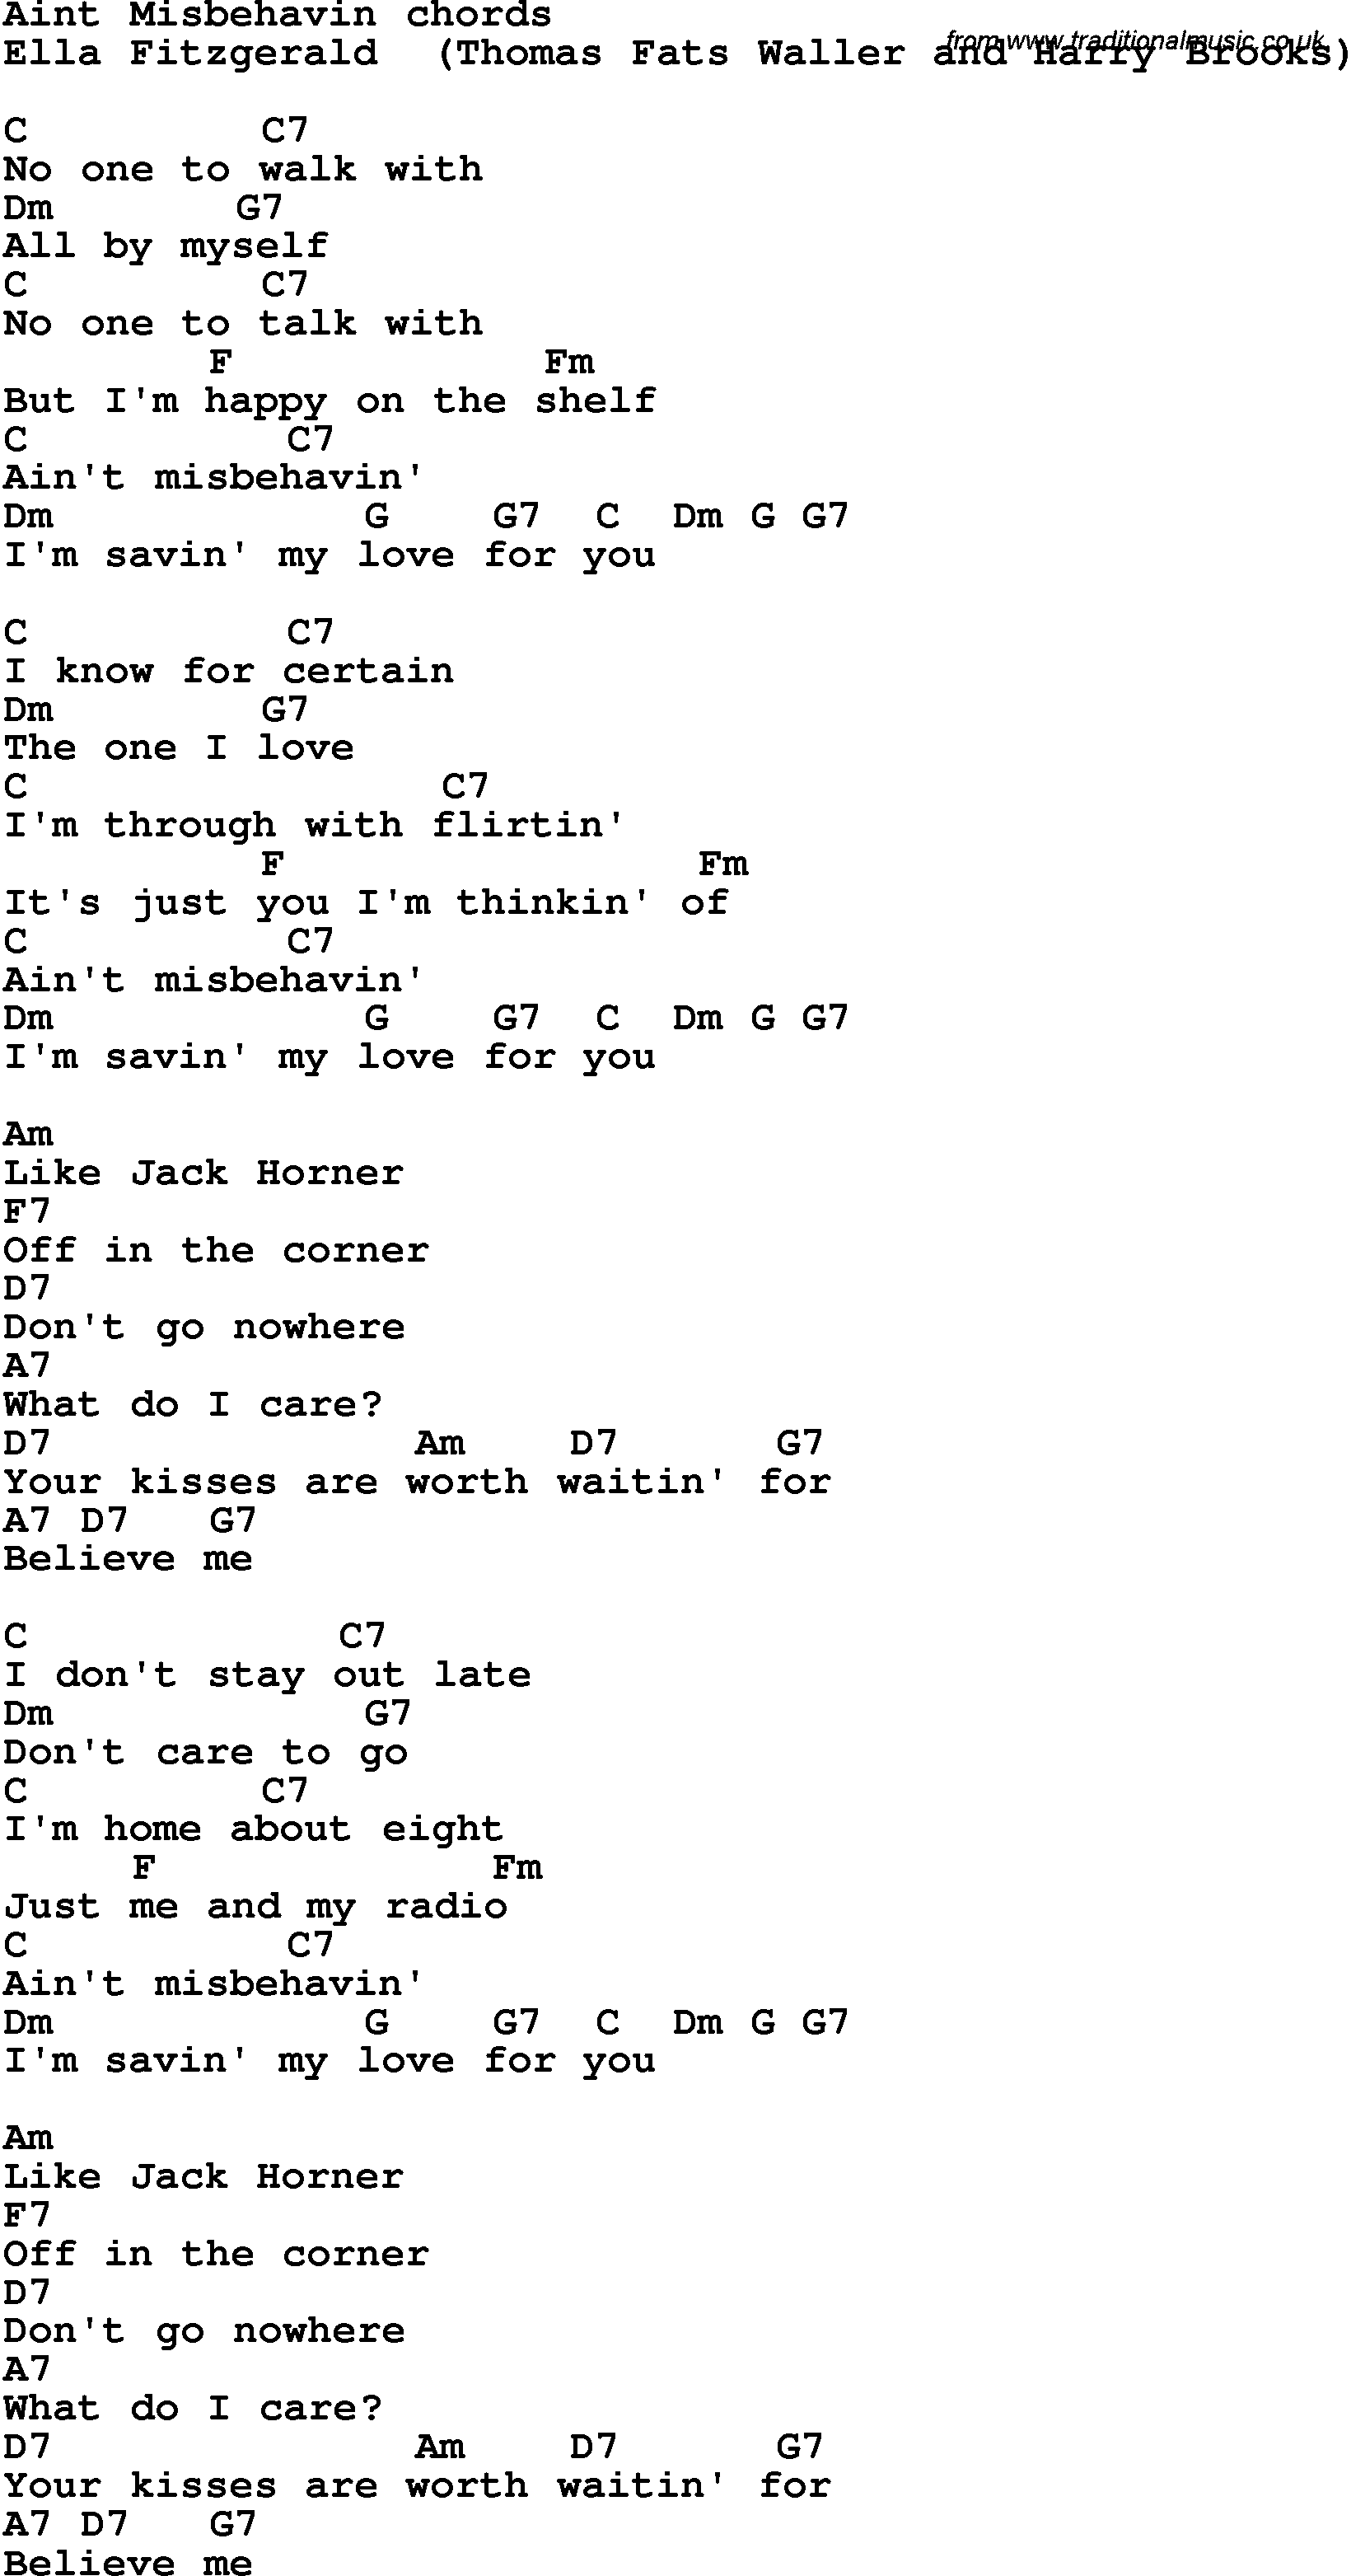 Song lyrics with guitar chords for aint misbehavin ella fitzgerald song lyrics with guitar chords for aint misbehavin ella fitzgerald hexwebz Image collections